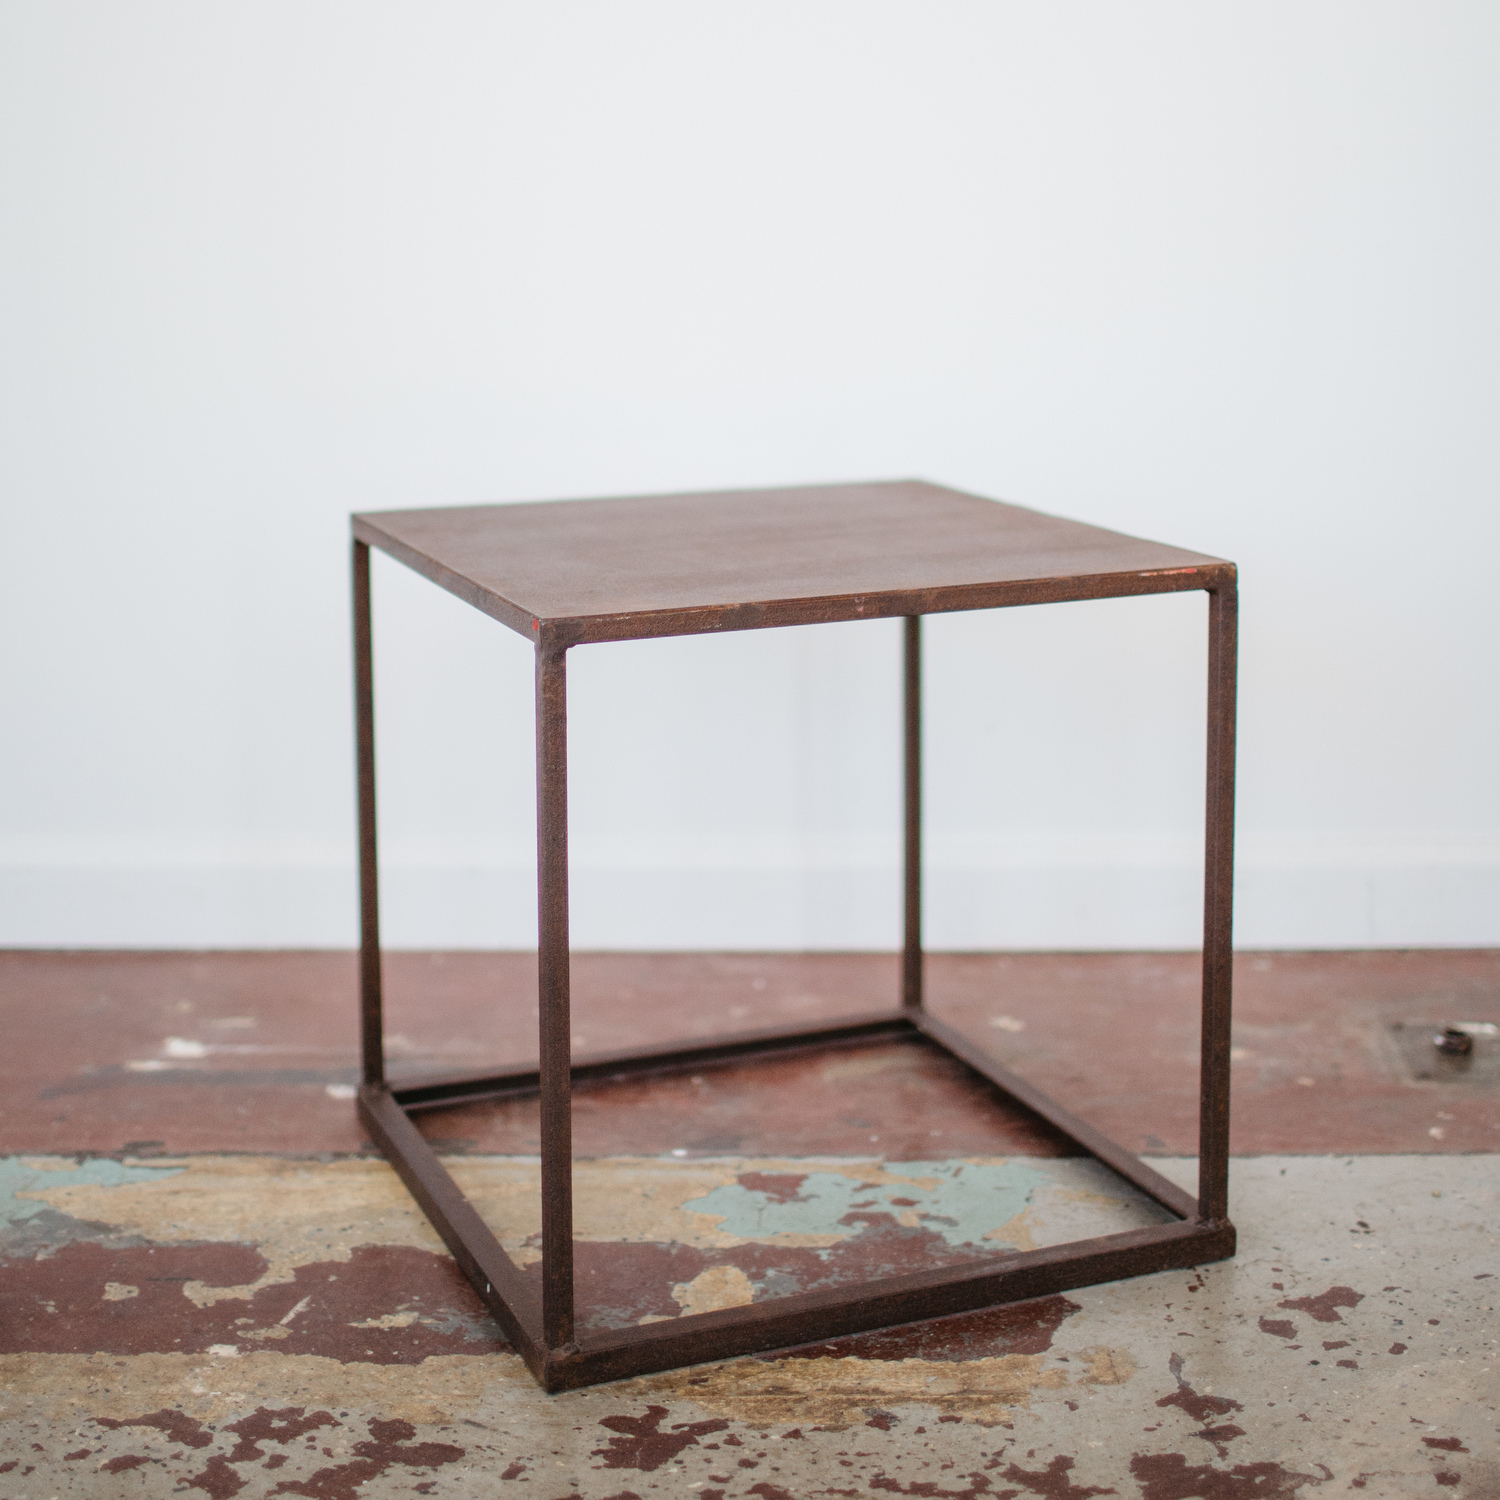 square metal frame side table — A Darling Day